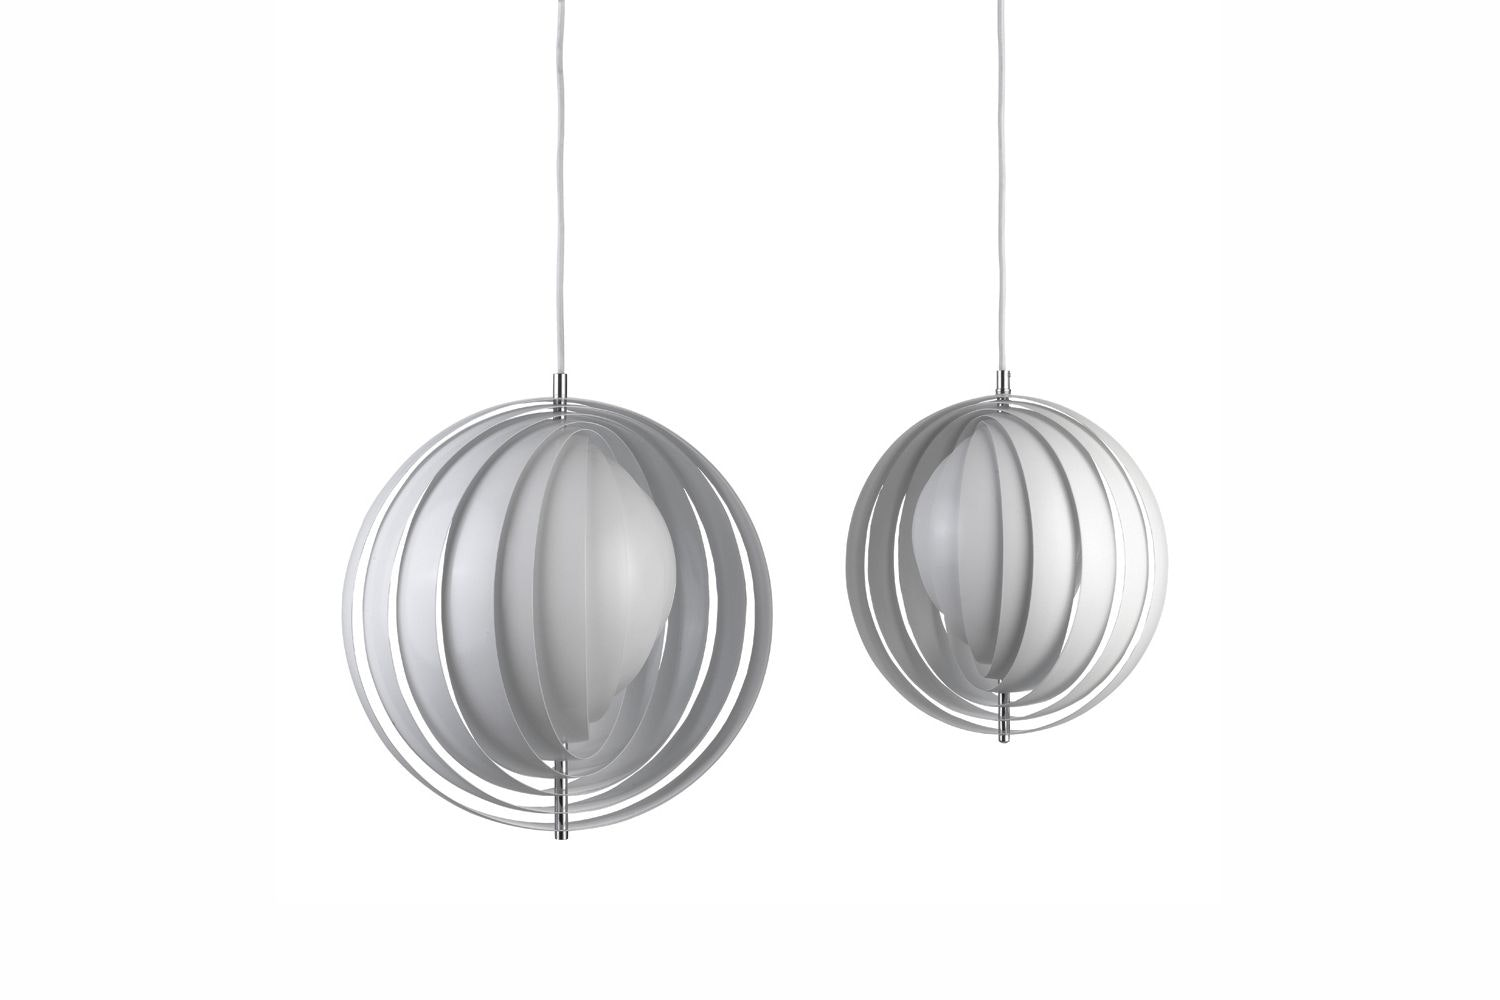 Moon Small Suspension Lamp by Verner Panton for Verpan